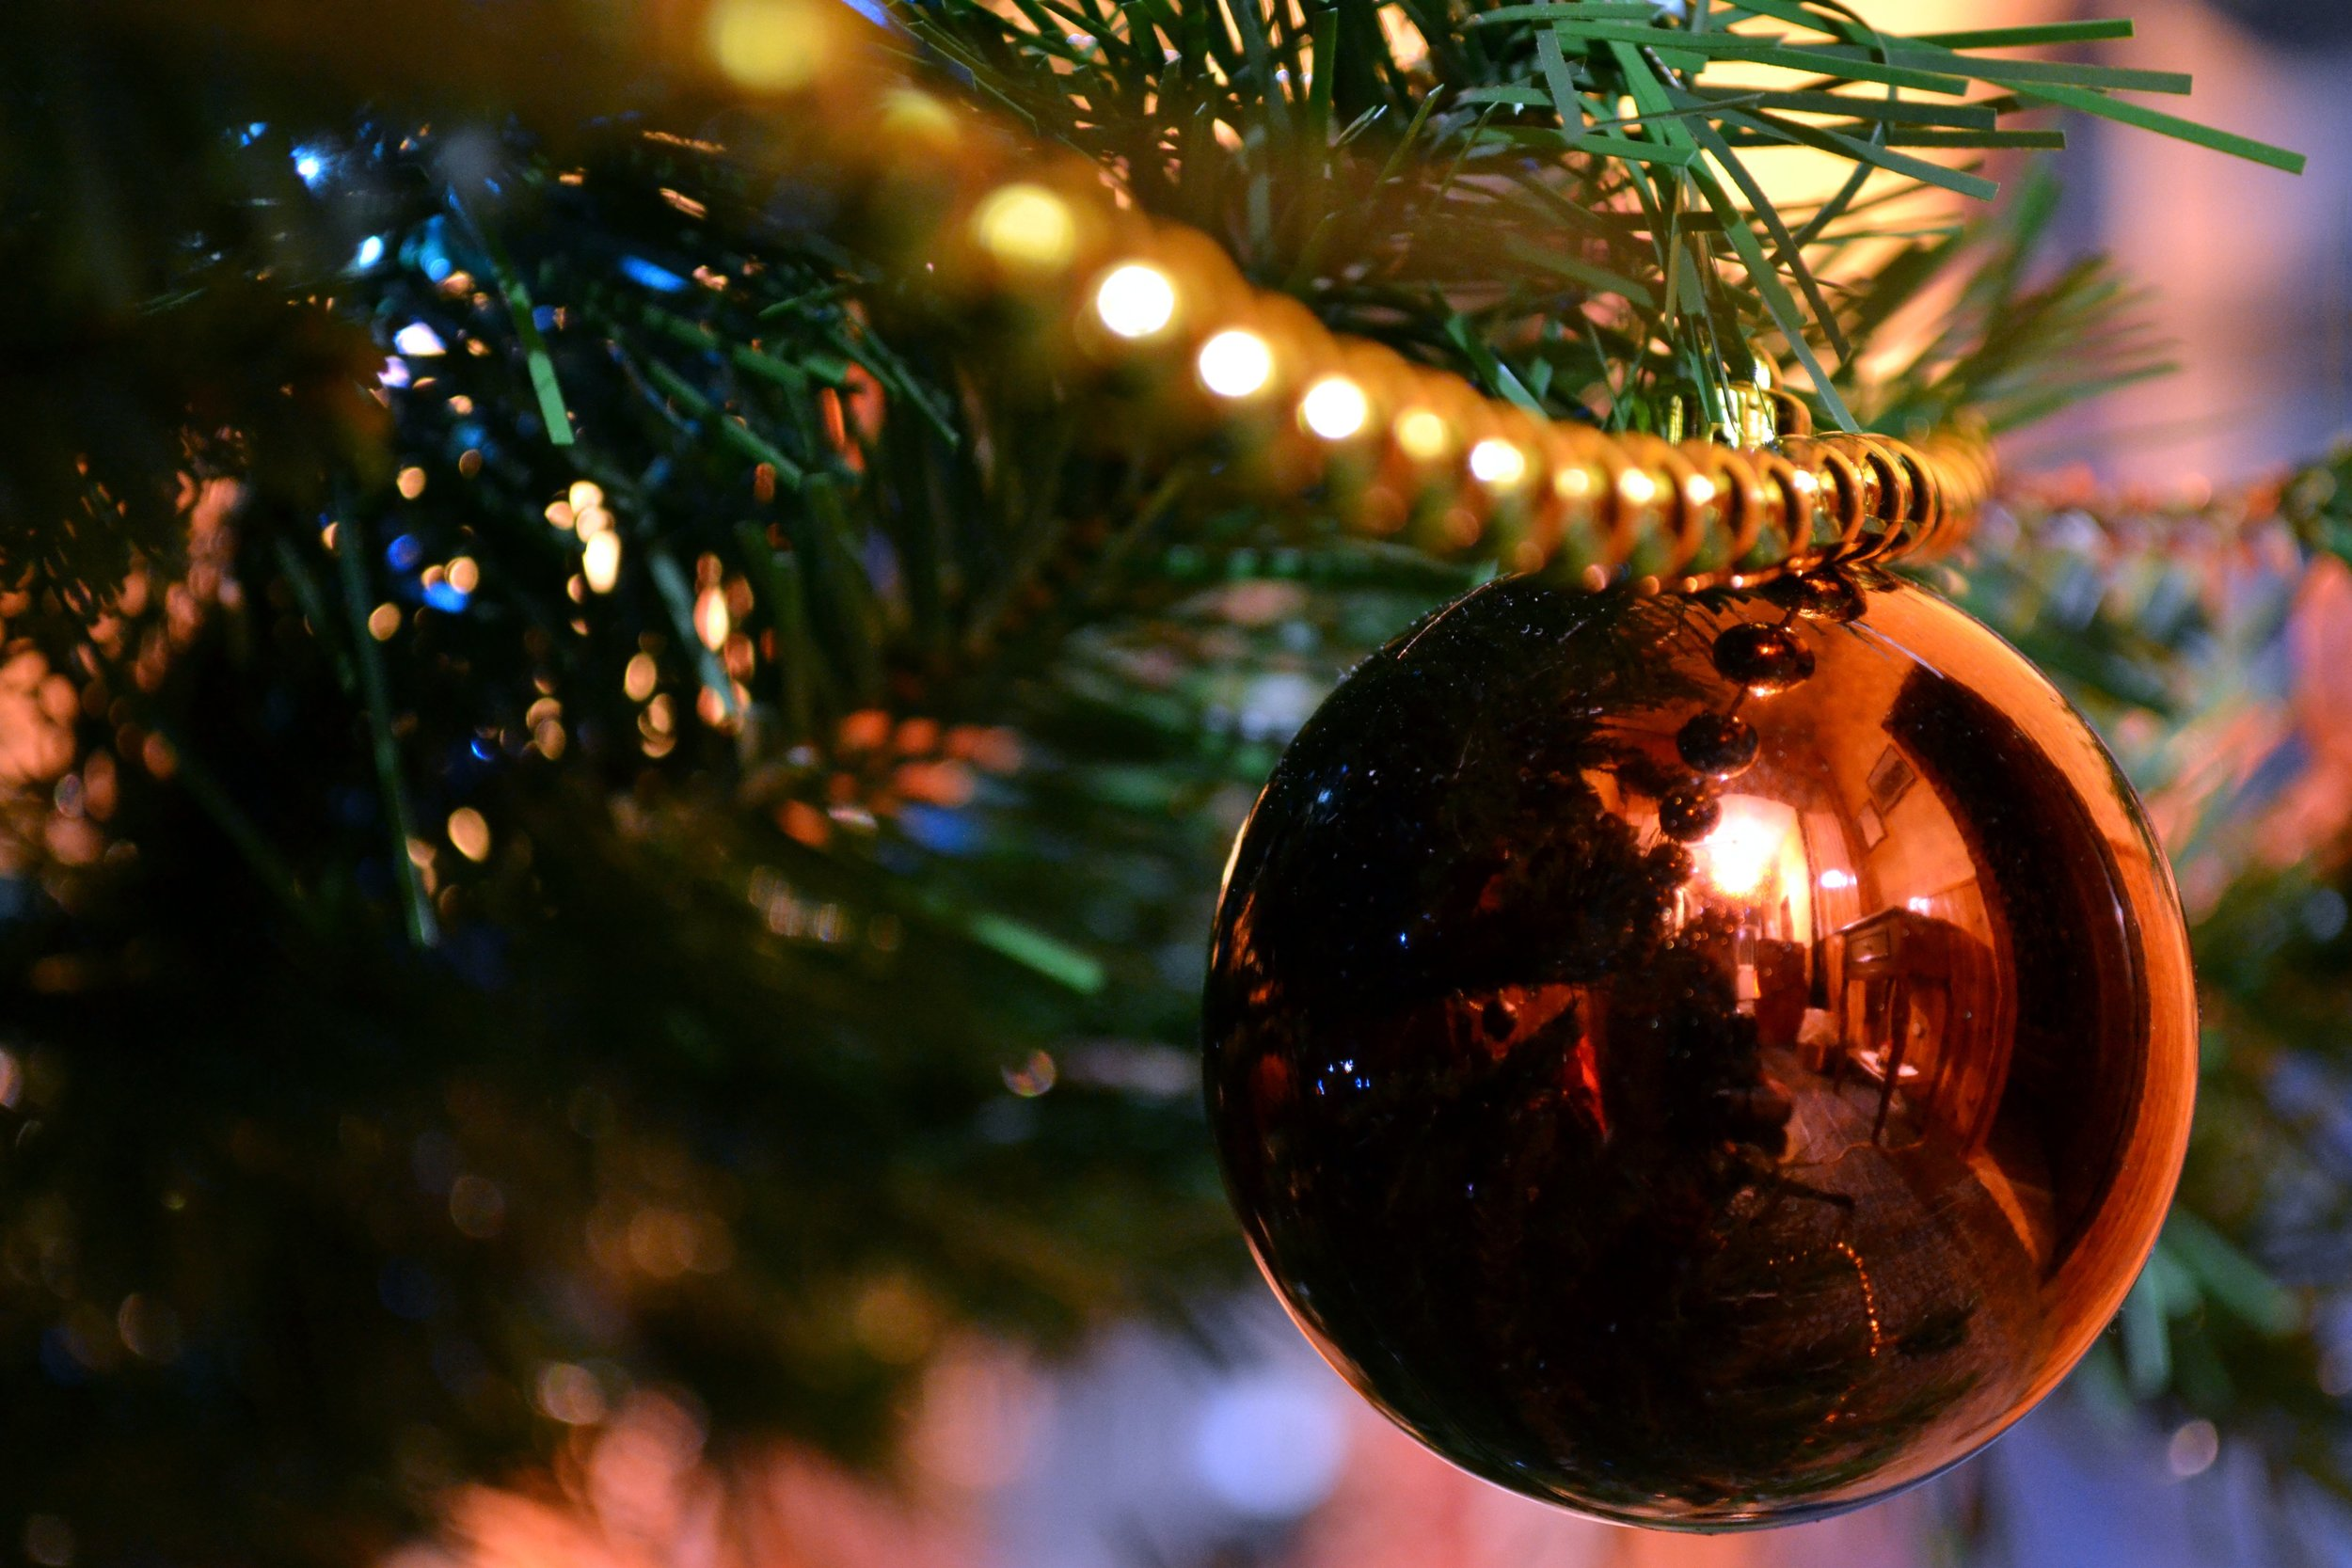 tree-branch-decoration-macro-holiday-christmas-732775-pxhere.com.jpg